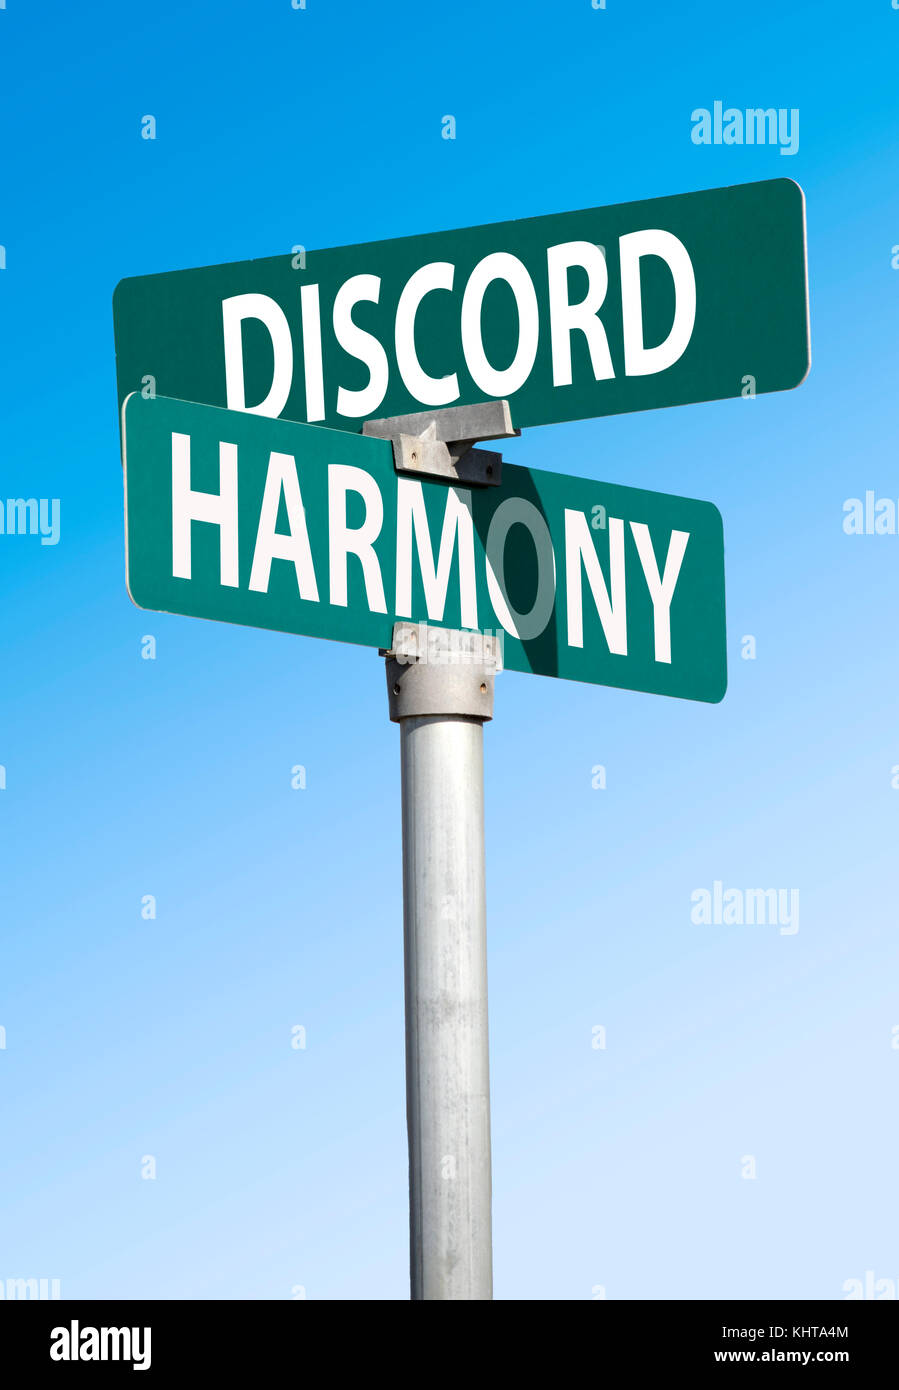 discord and harmony - Stock Image